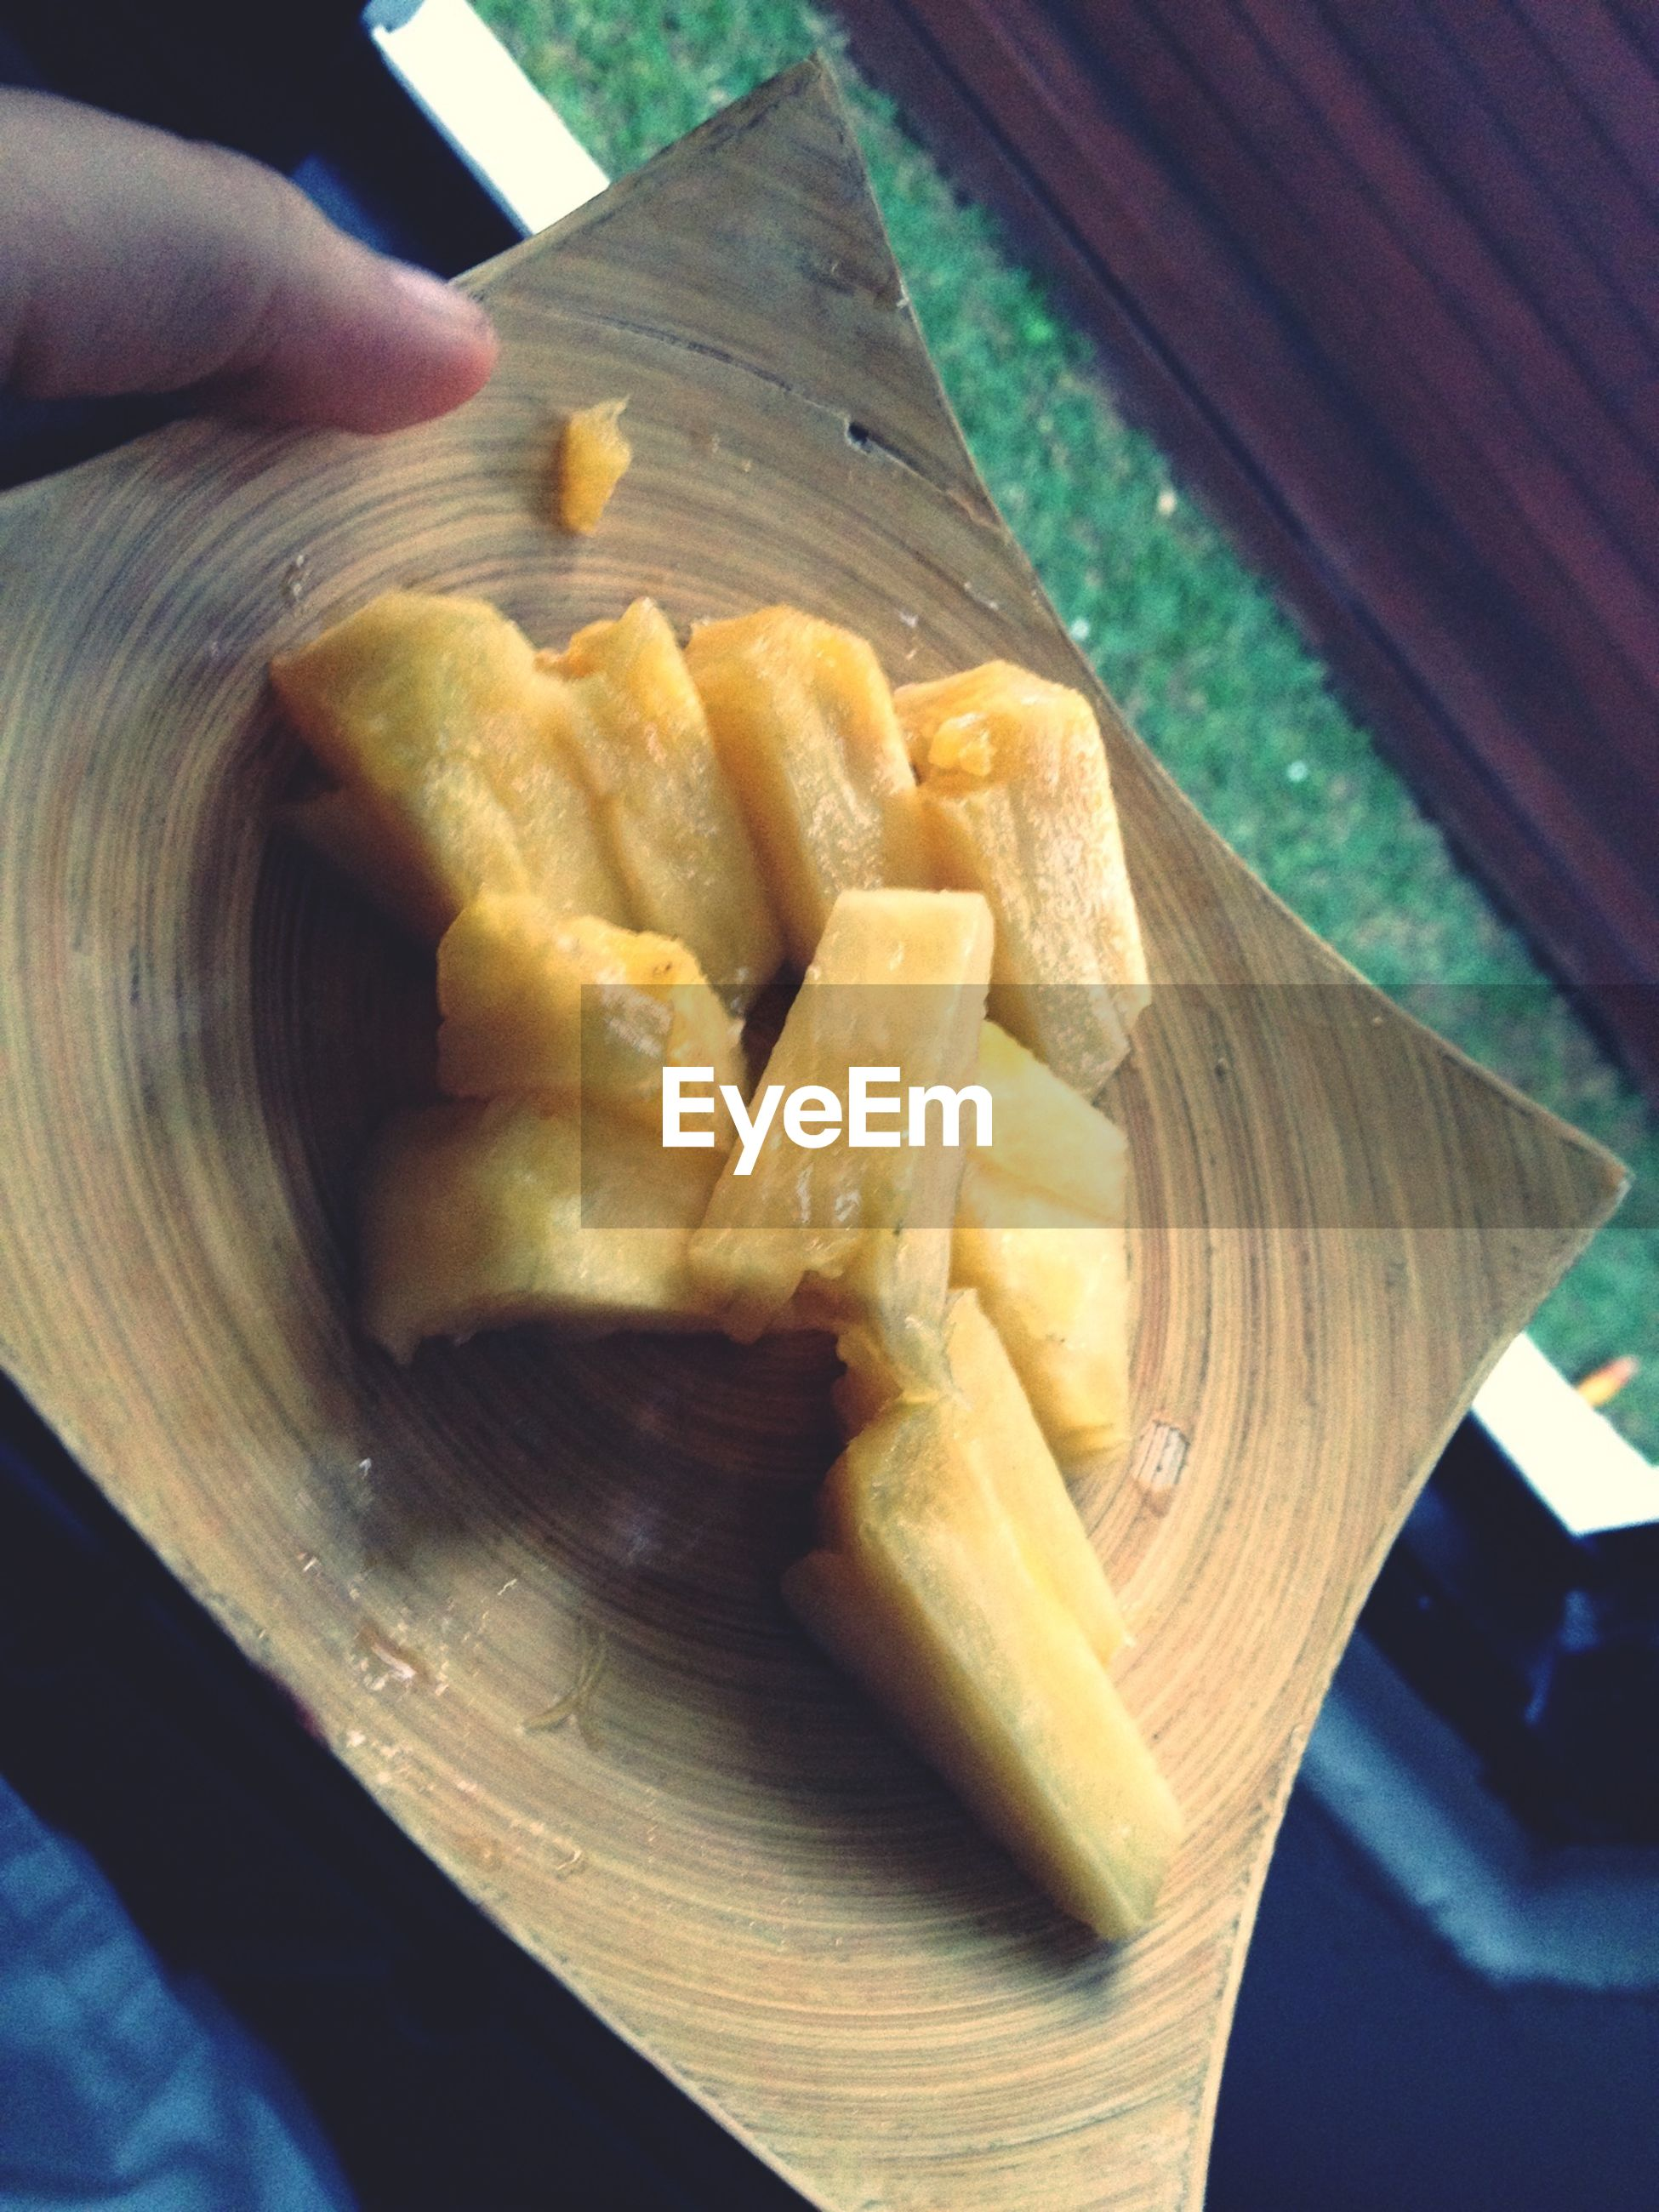 food and drink, food, indoors, freshness, person, table, part of, cropped, healthy eating, high angle view, holding, close-up, ready-to-eat, wood - material, preparation, unrecognizable person, kitchen knife